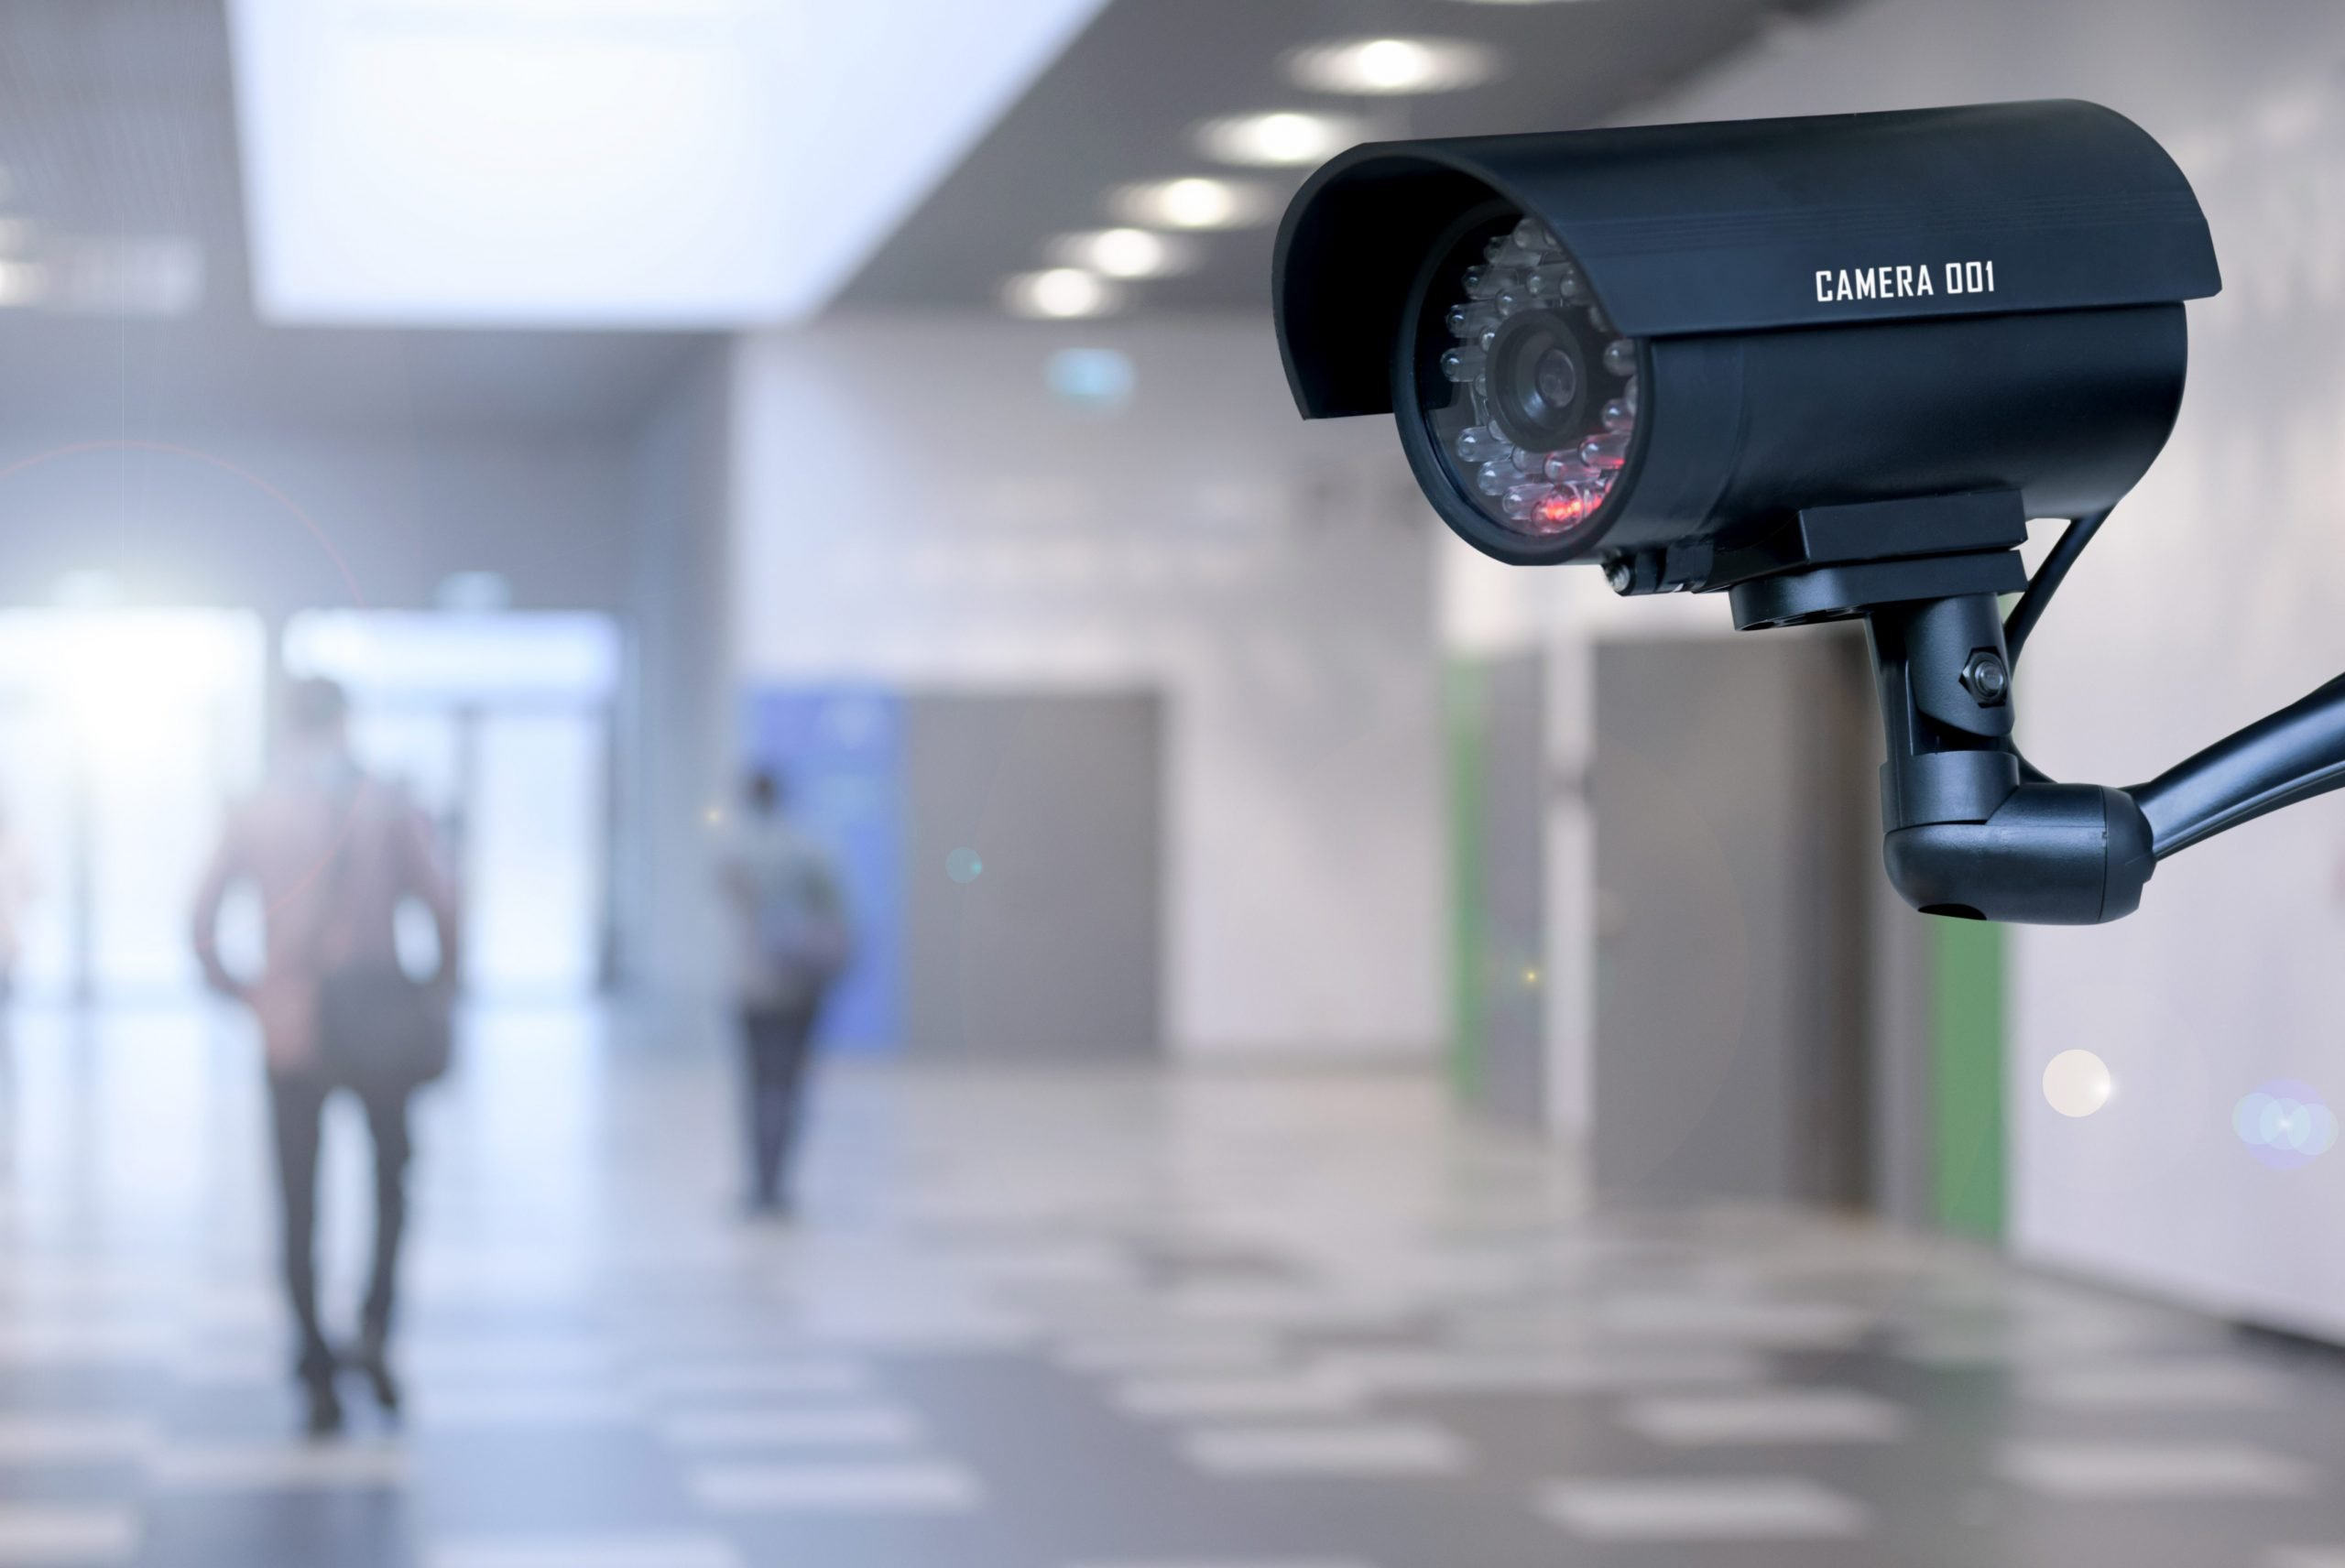 Security camera in foyer